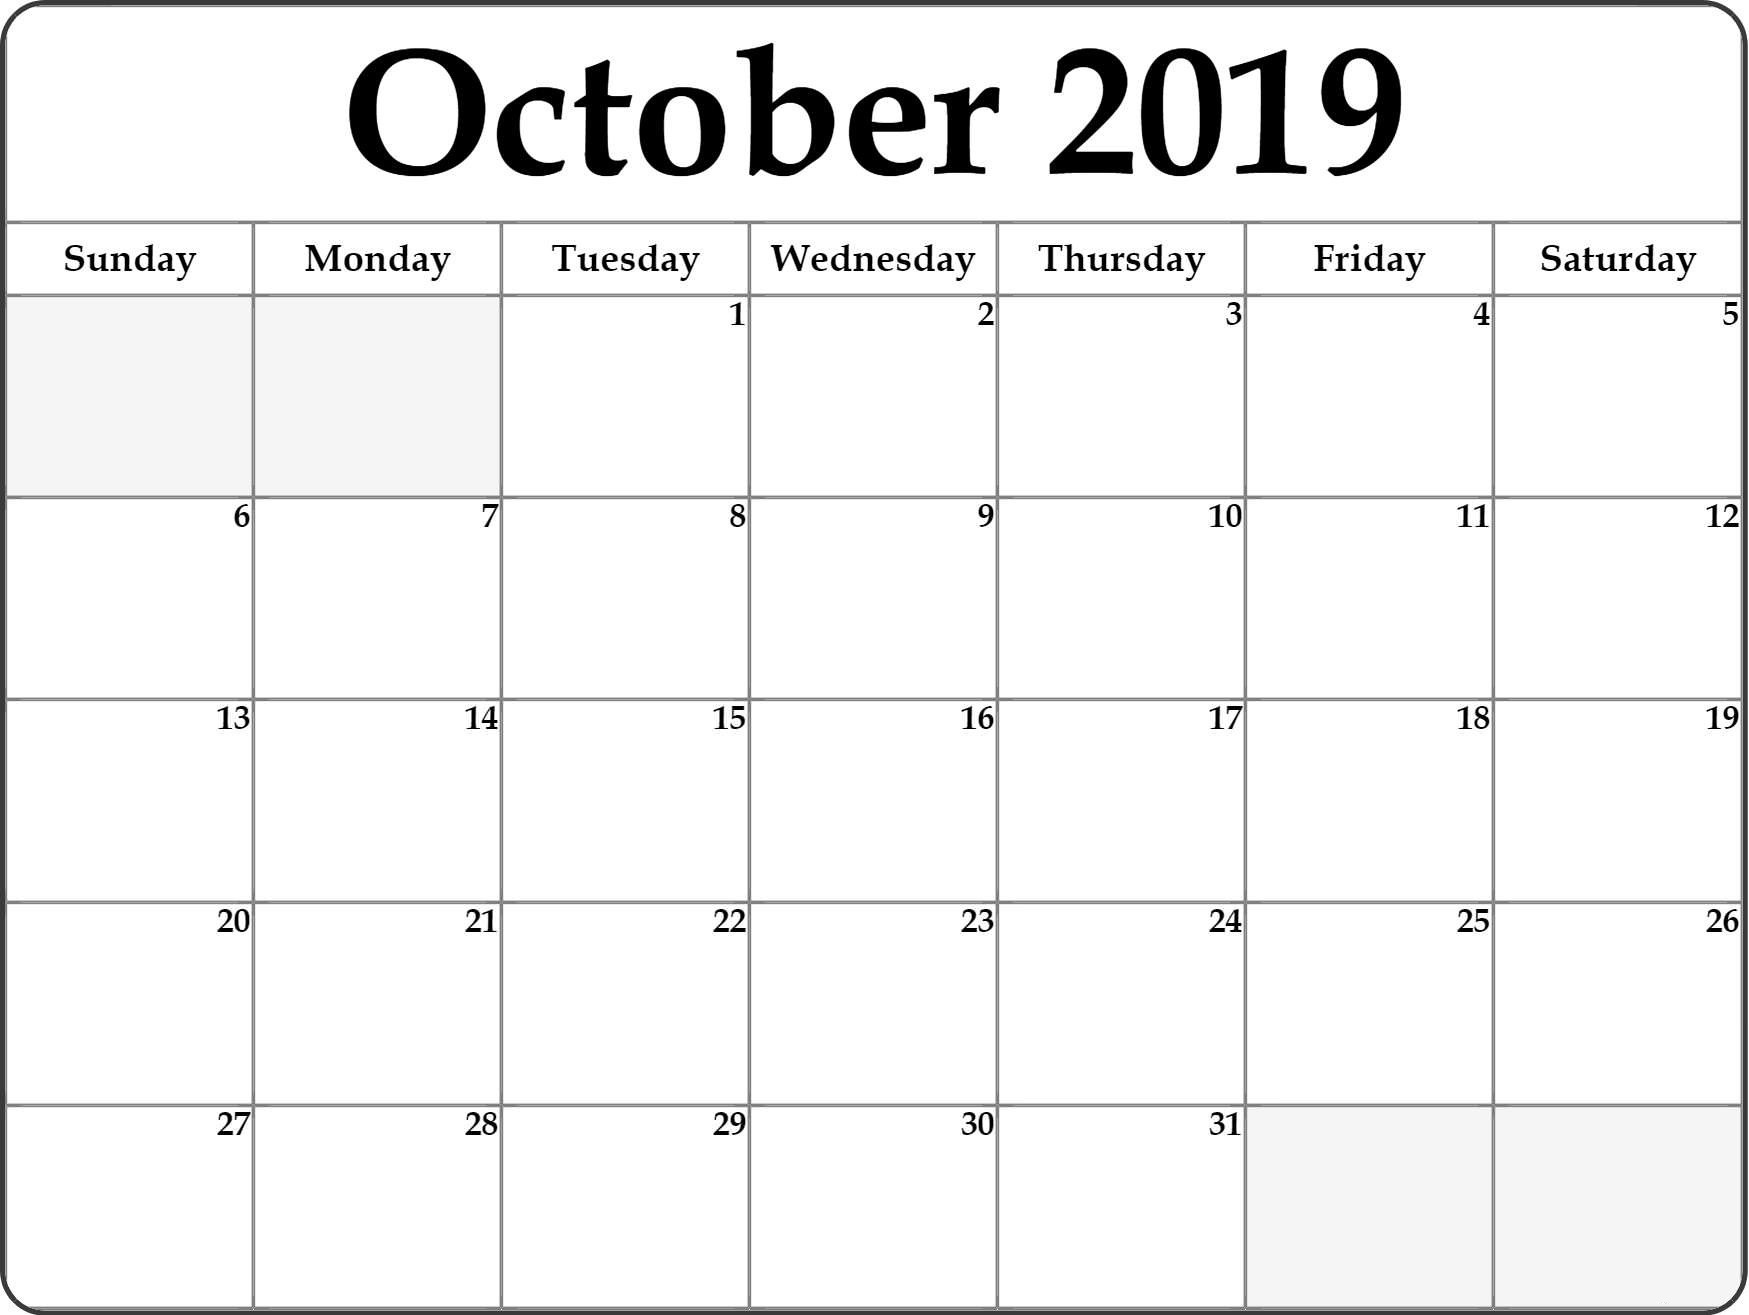 Fillable October Calendar 2019 Editable Printable Notes To intended for Blank Fillable Calendar